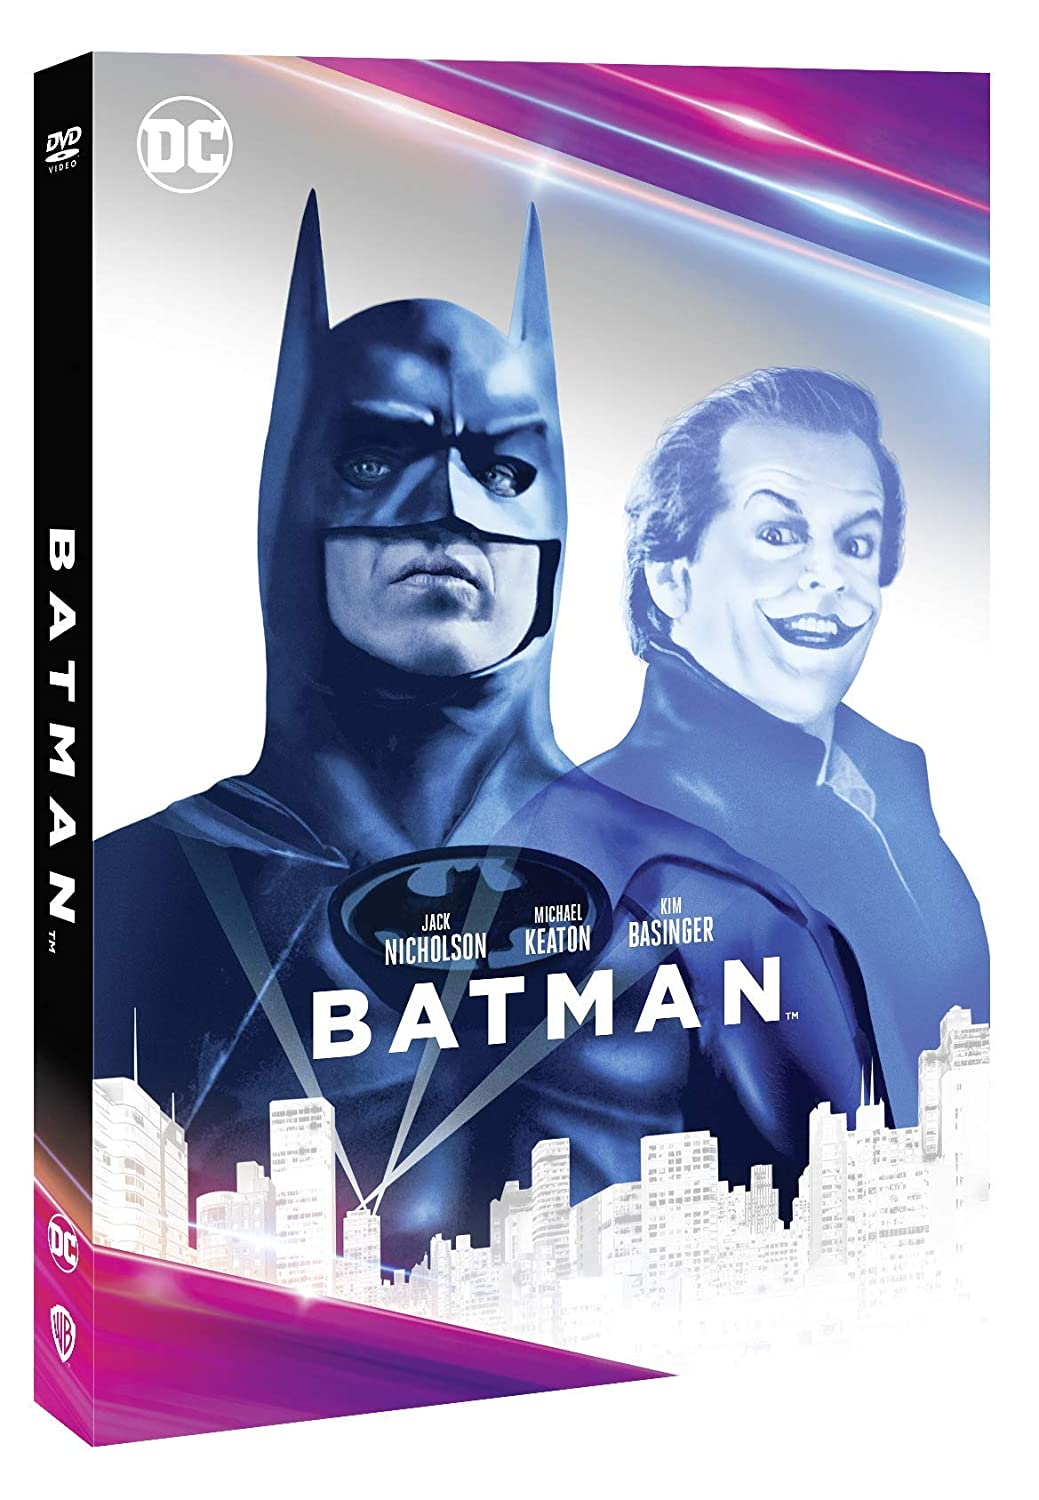 BATMAN (DC COMICS COLLECTION) (DVD)